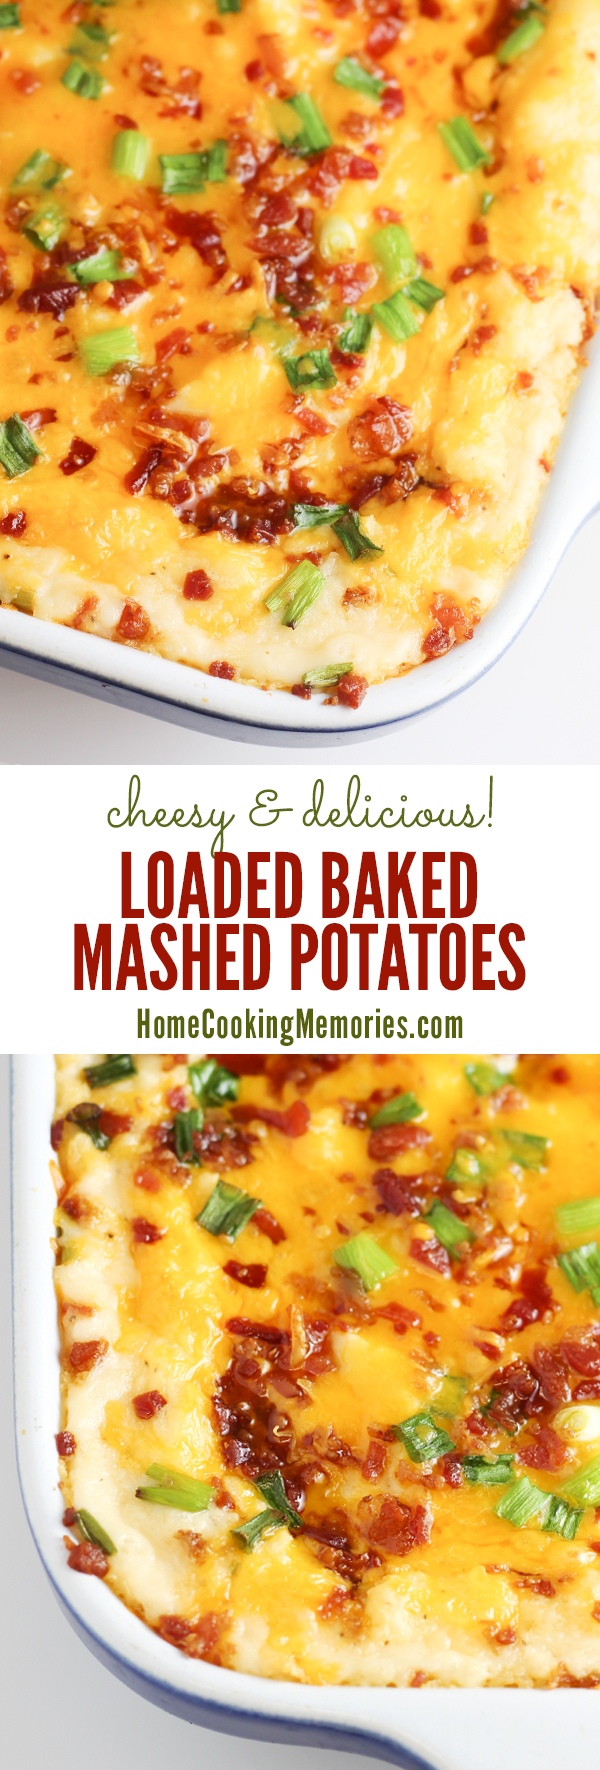 Cheesy Potato Side Dish: Loaded Baked Mashed Potatoes Recipe